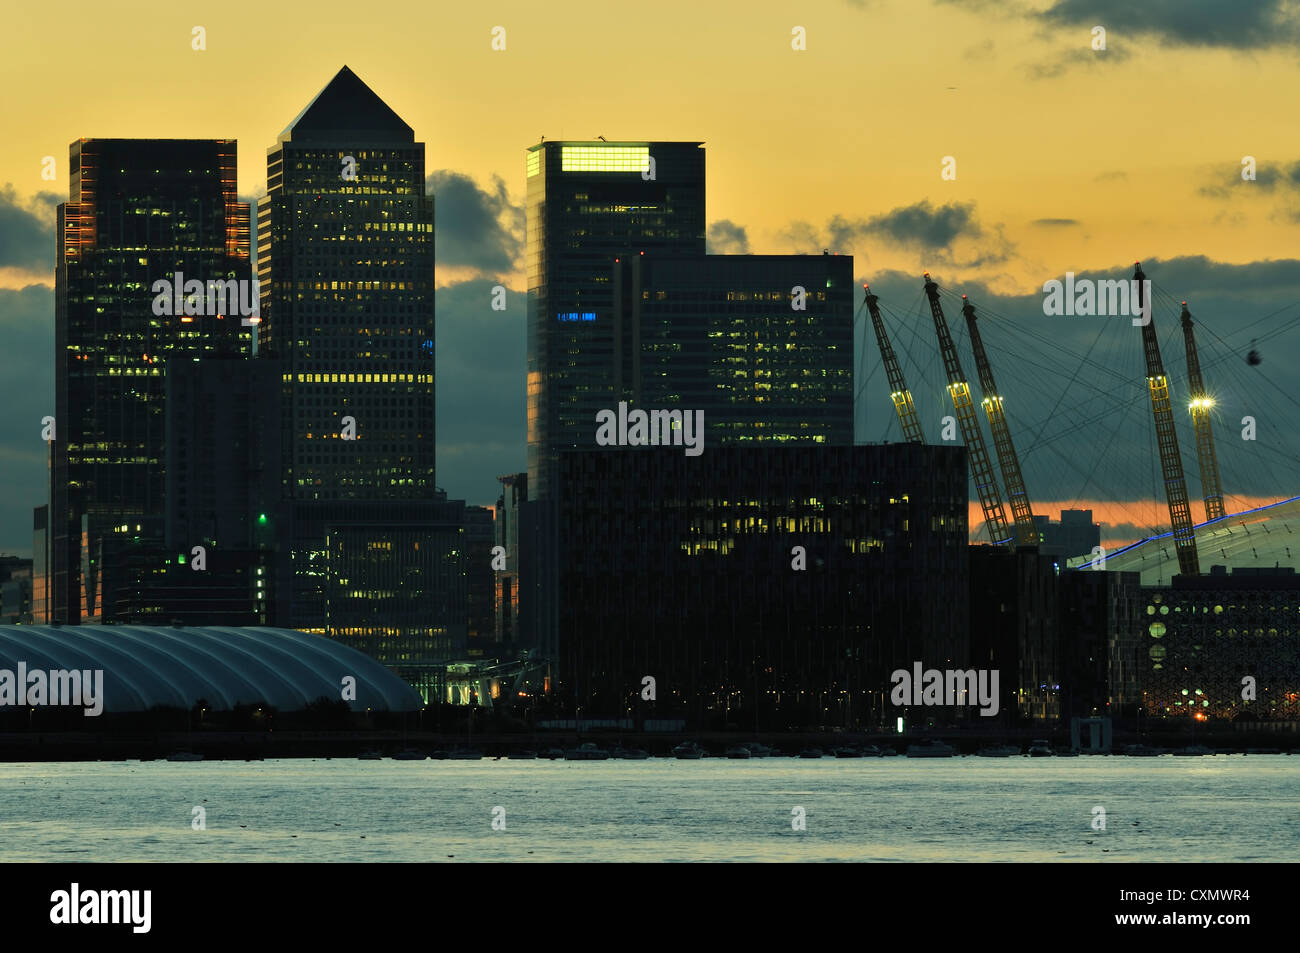 London Docklands skyline with o2 Arena and Canary Wharf, early evening - Stock Image